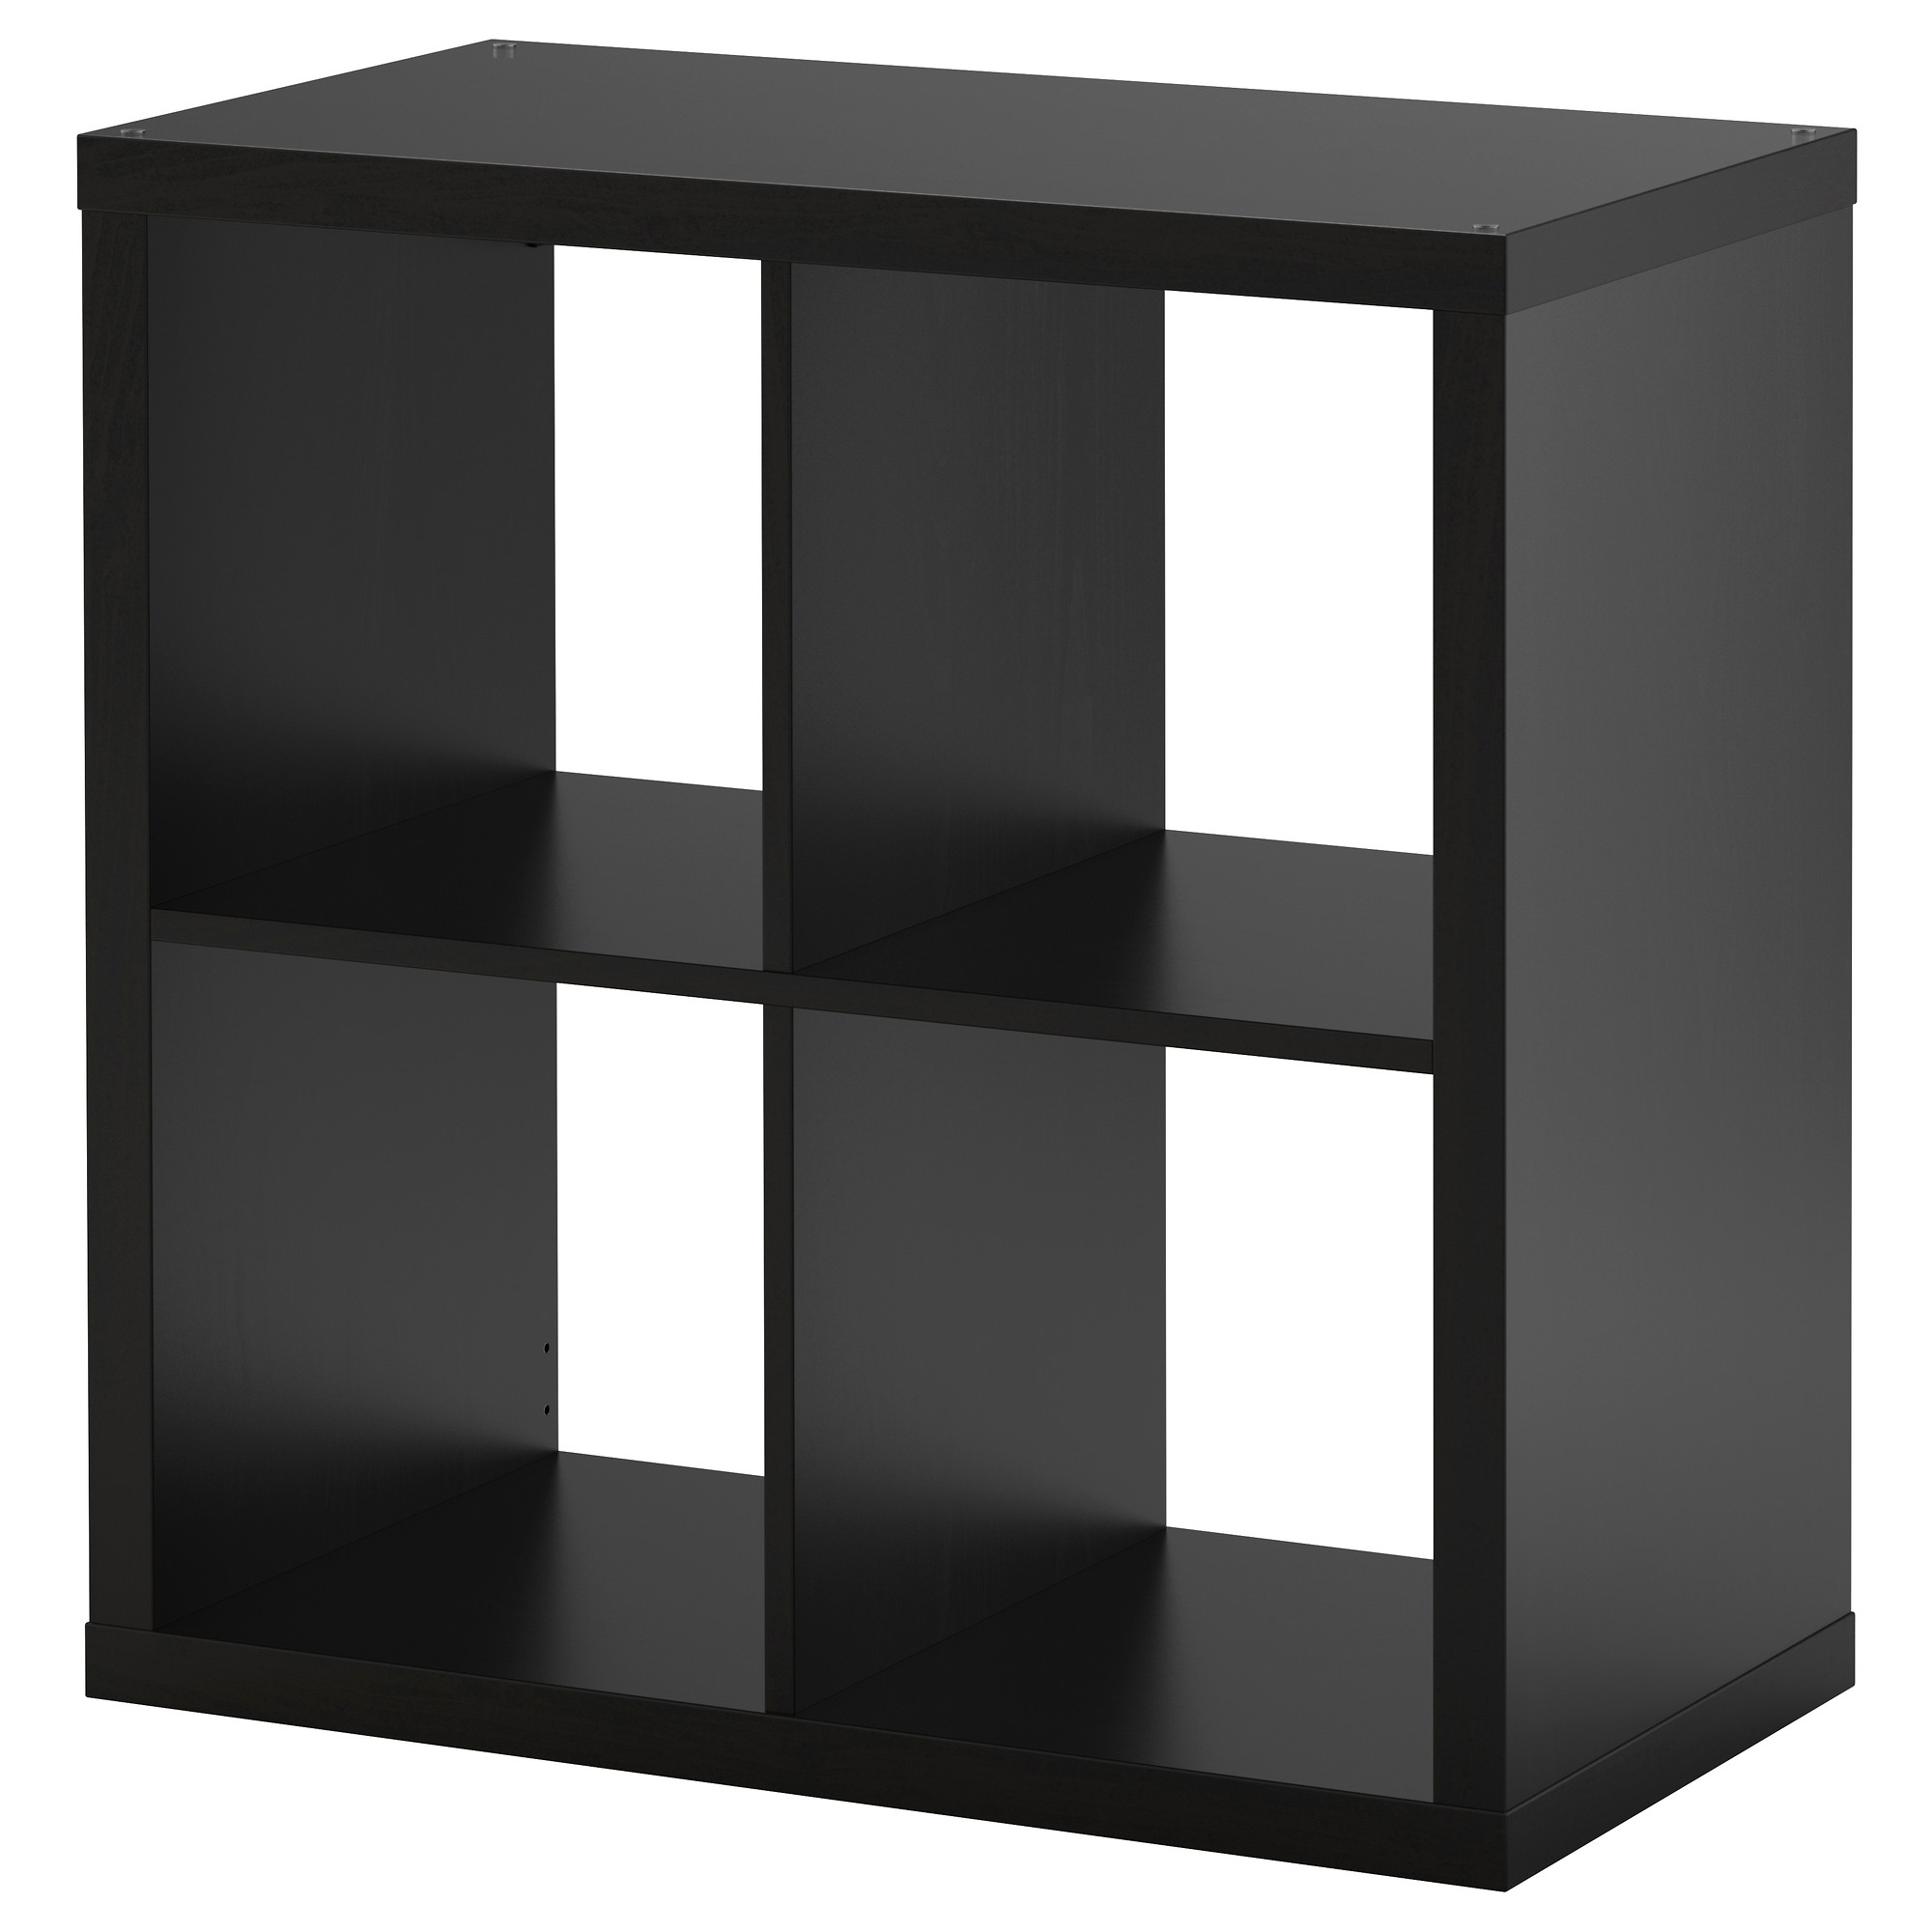 KALLAX Shelf unit - black-brown - IKEA